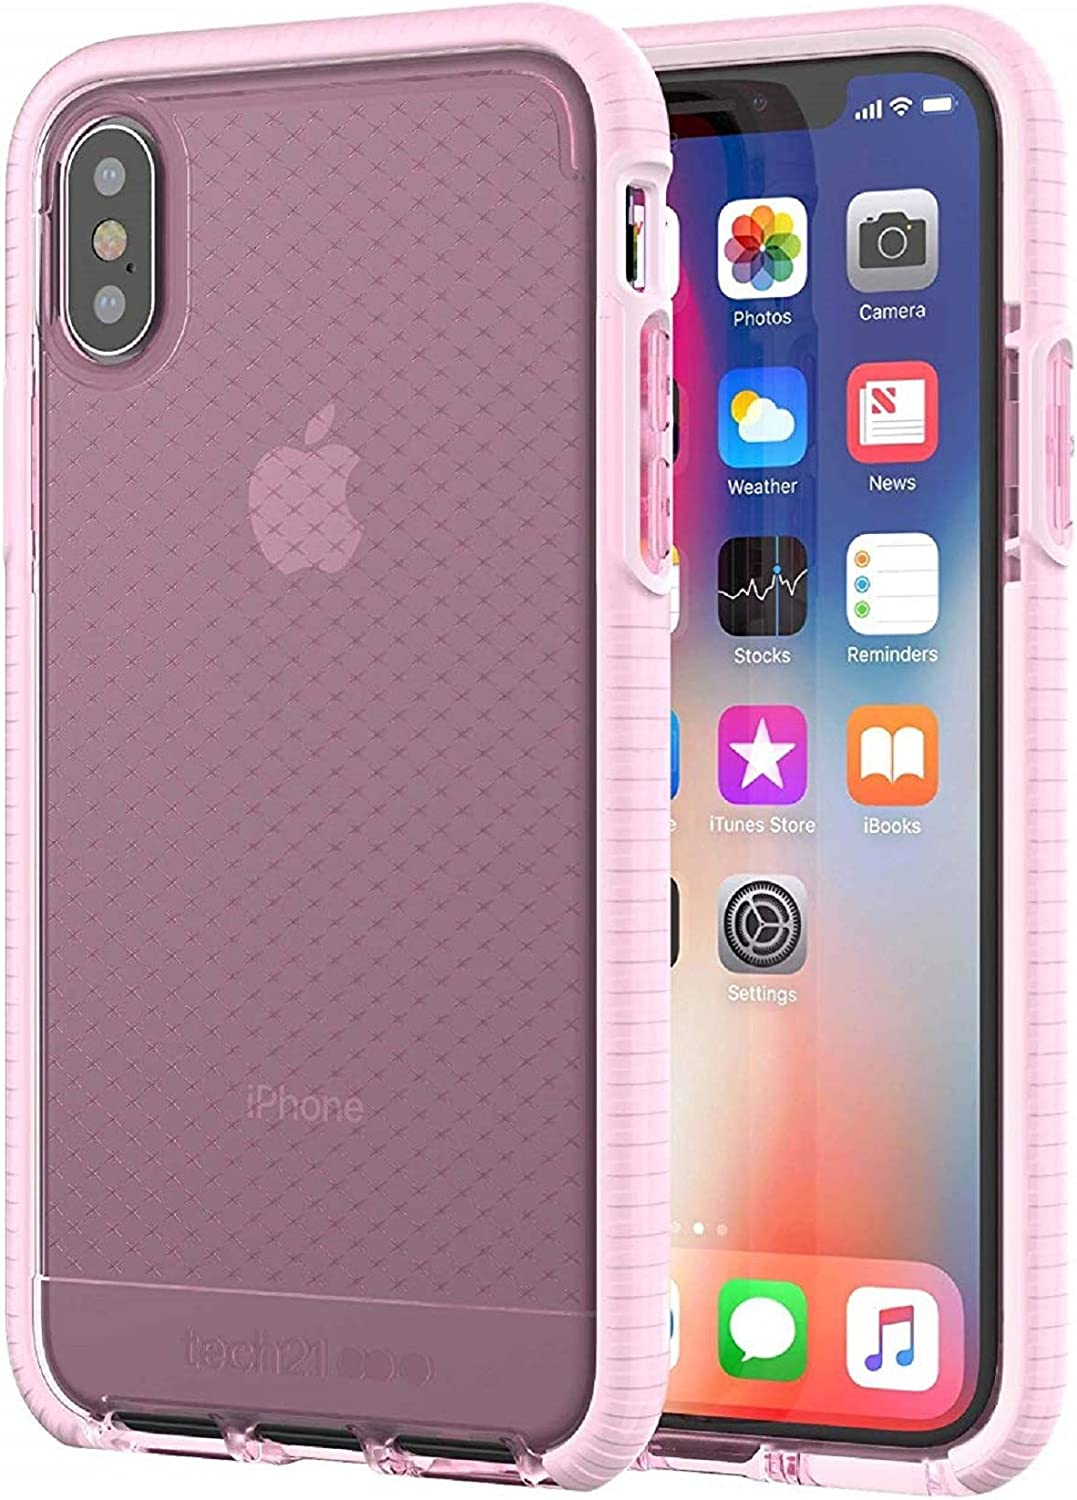 tech21 - Evo Check Case for Apple iPhone X (Rose Tint/White)